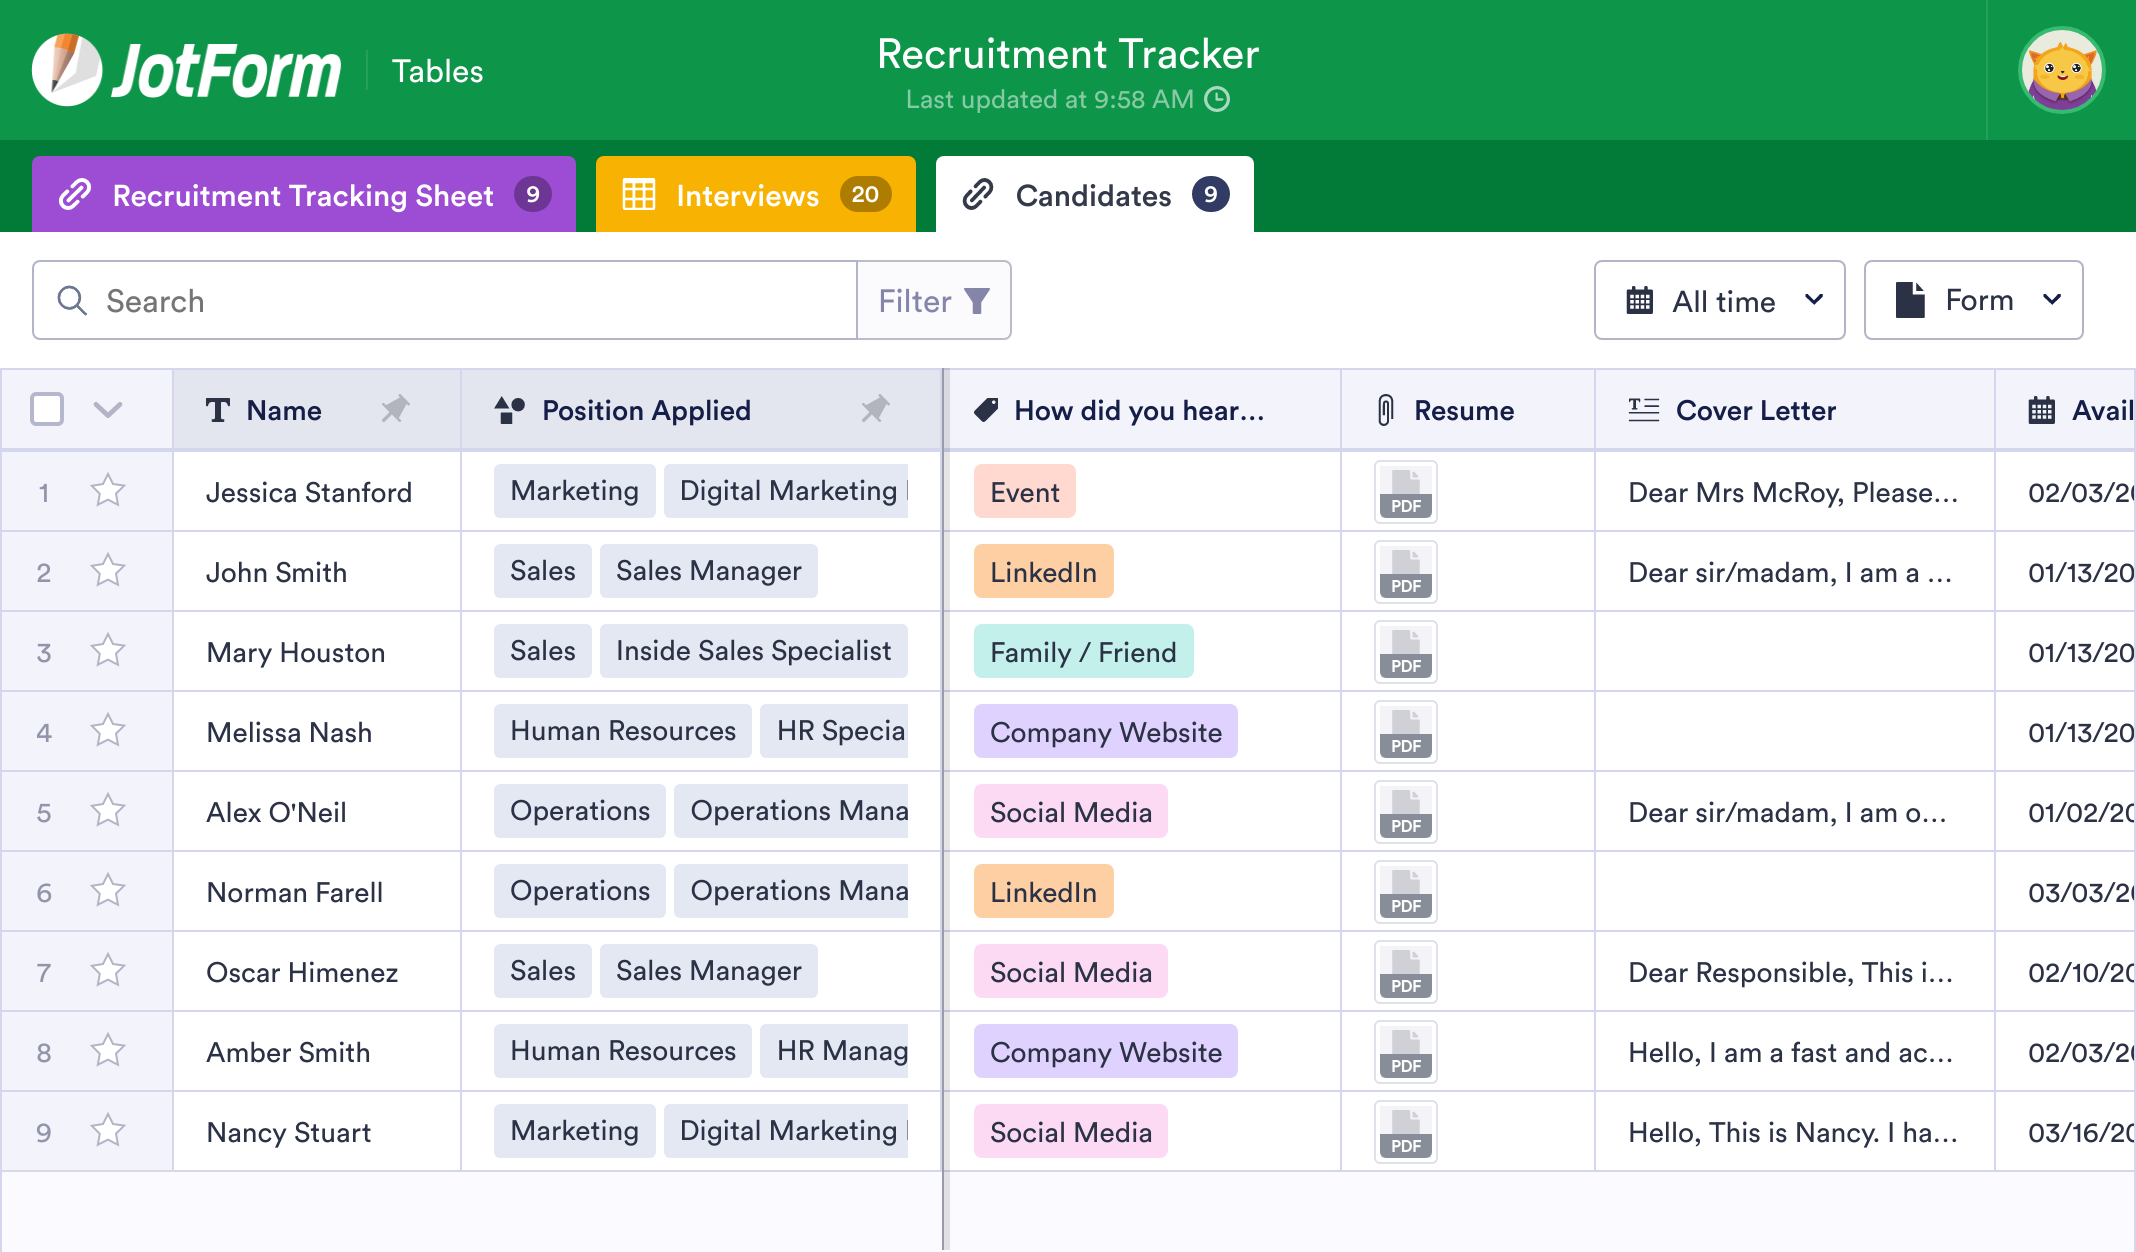 Recruitment Tracker